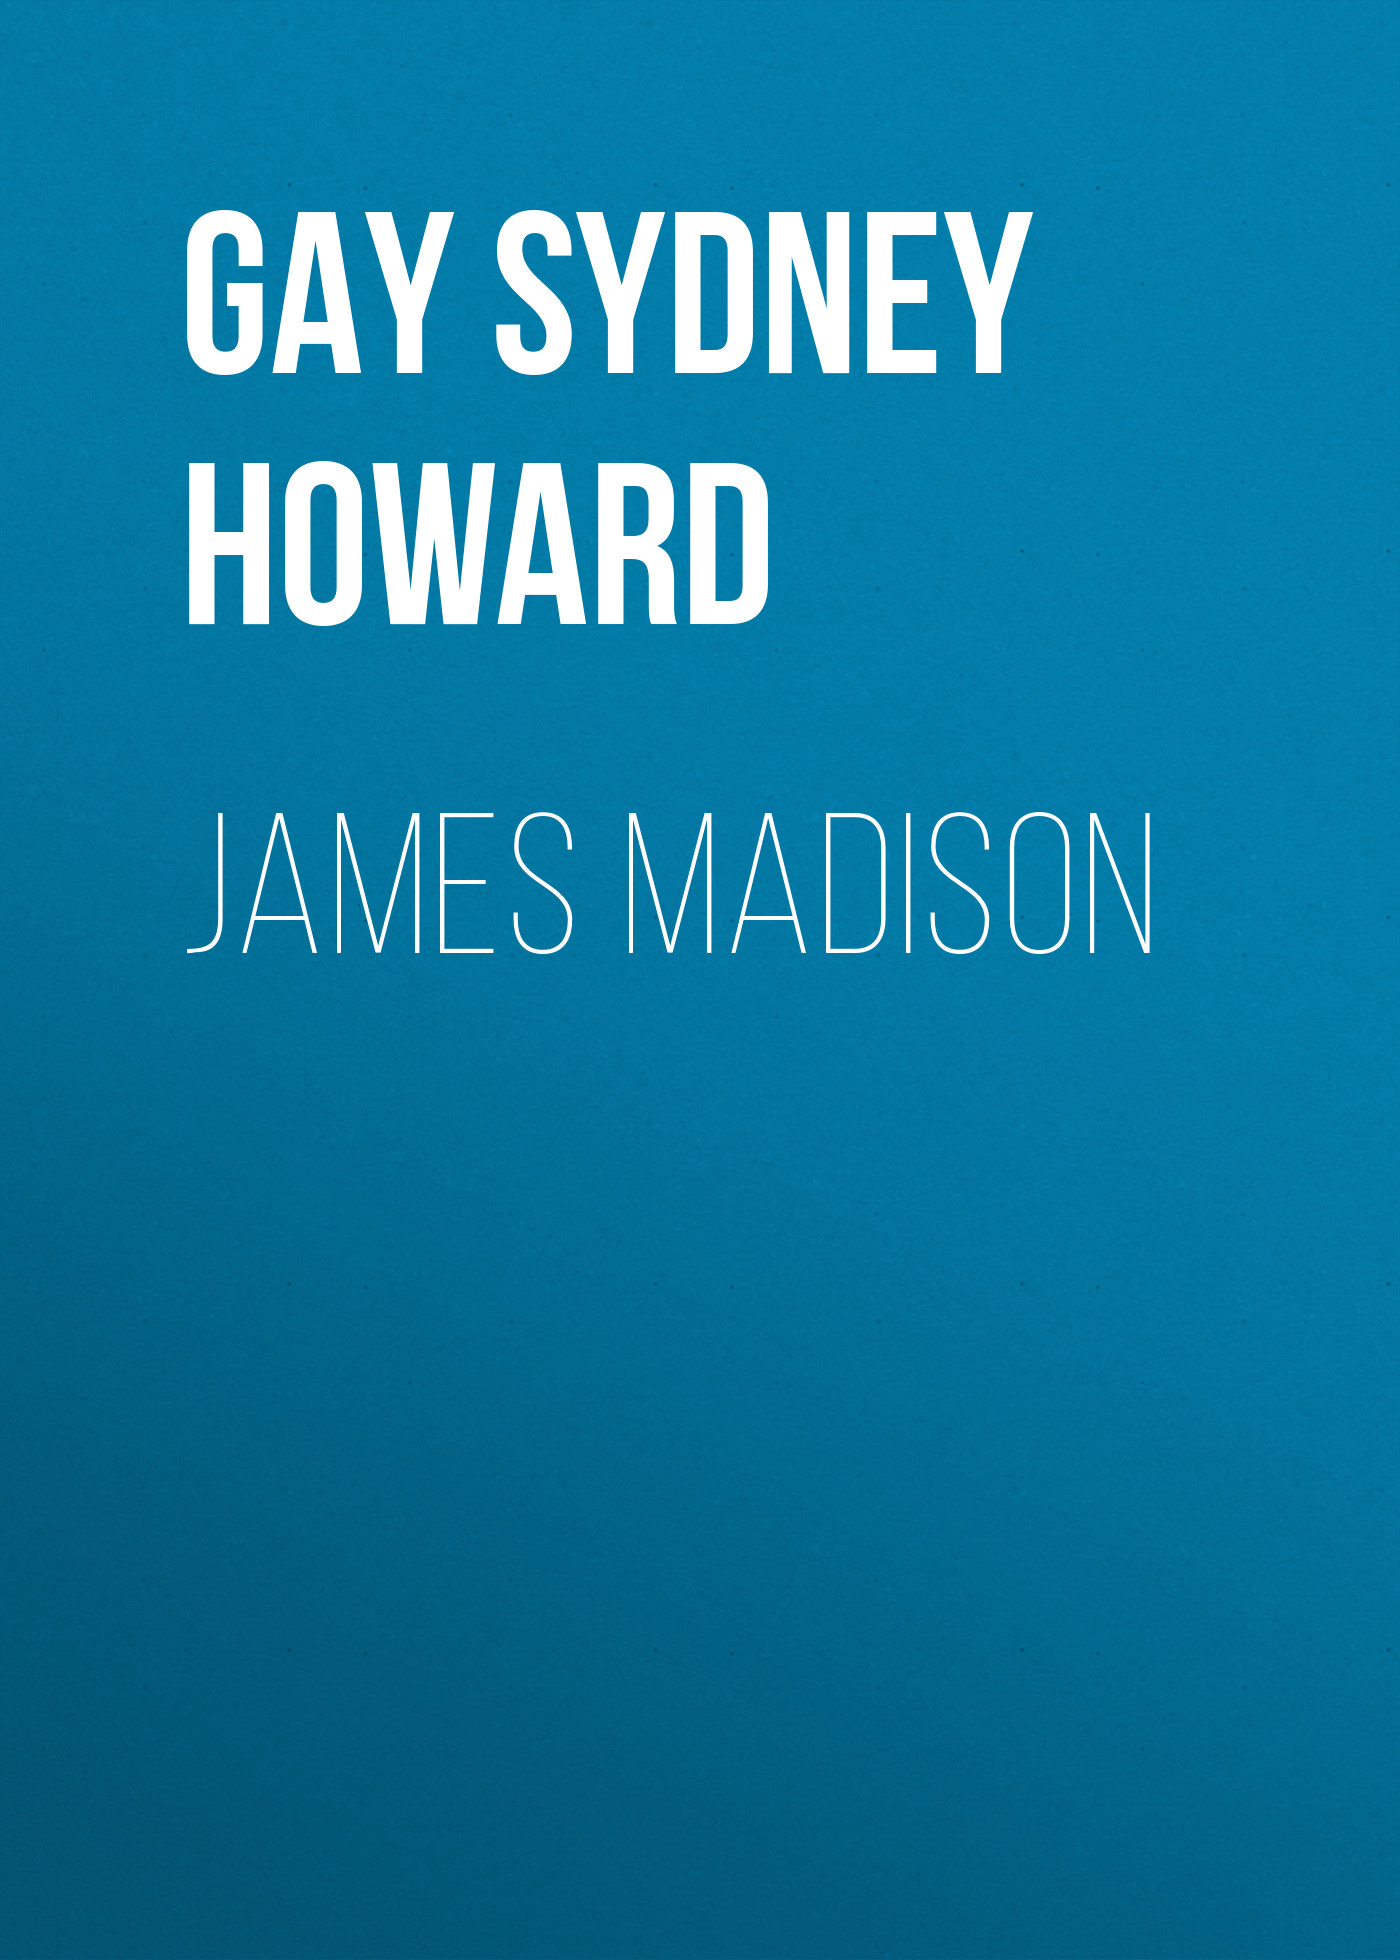 Gay Sydney Howard James Madison